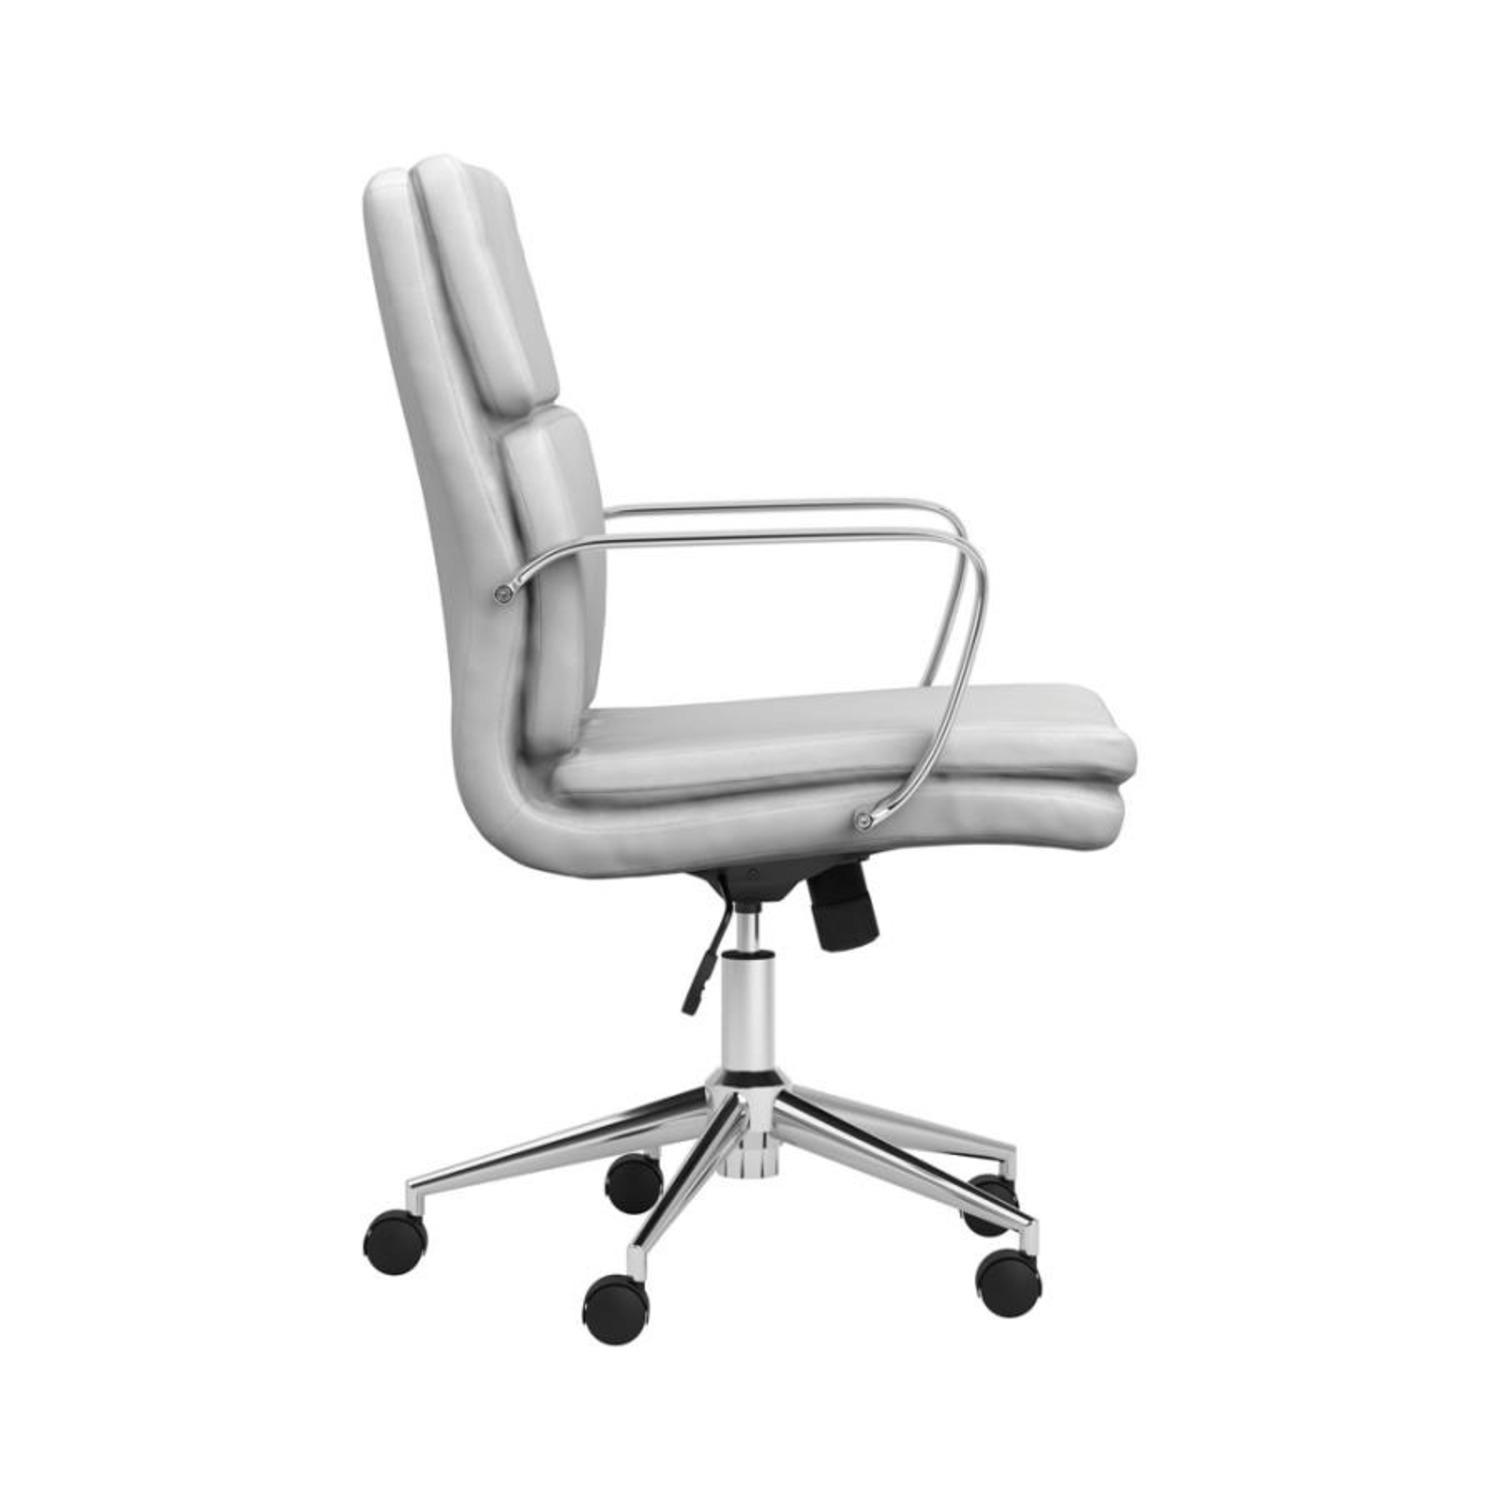 Office Chair In White Leatherette & Chrome Finish - image-5